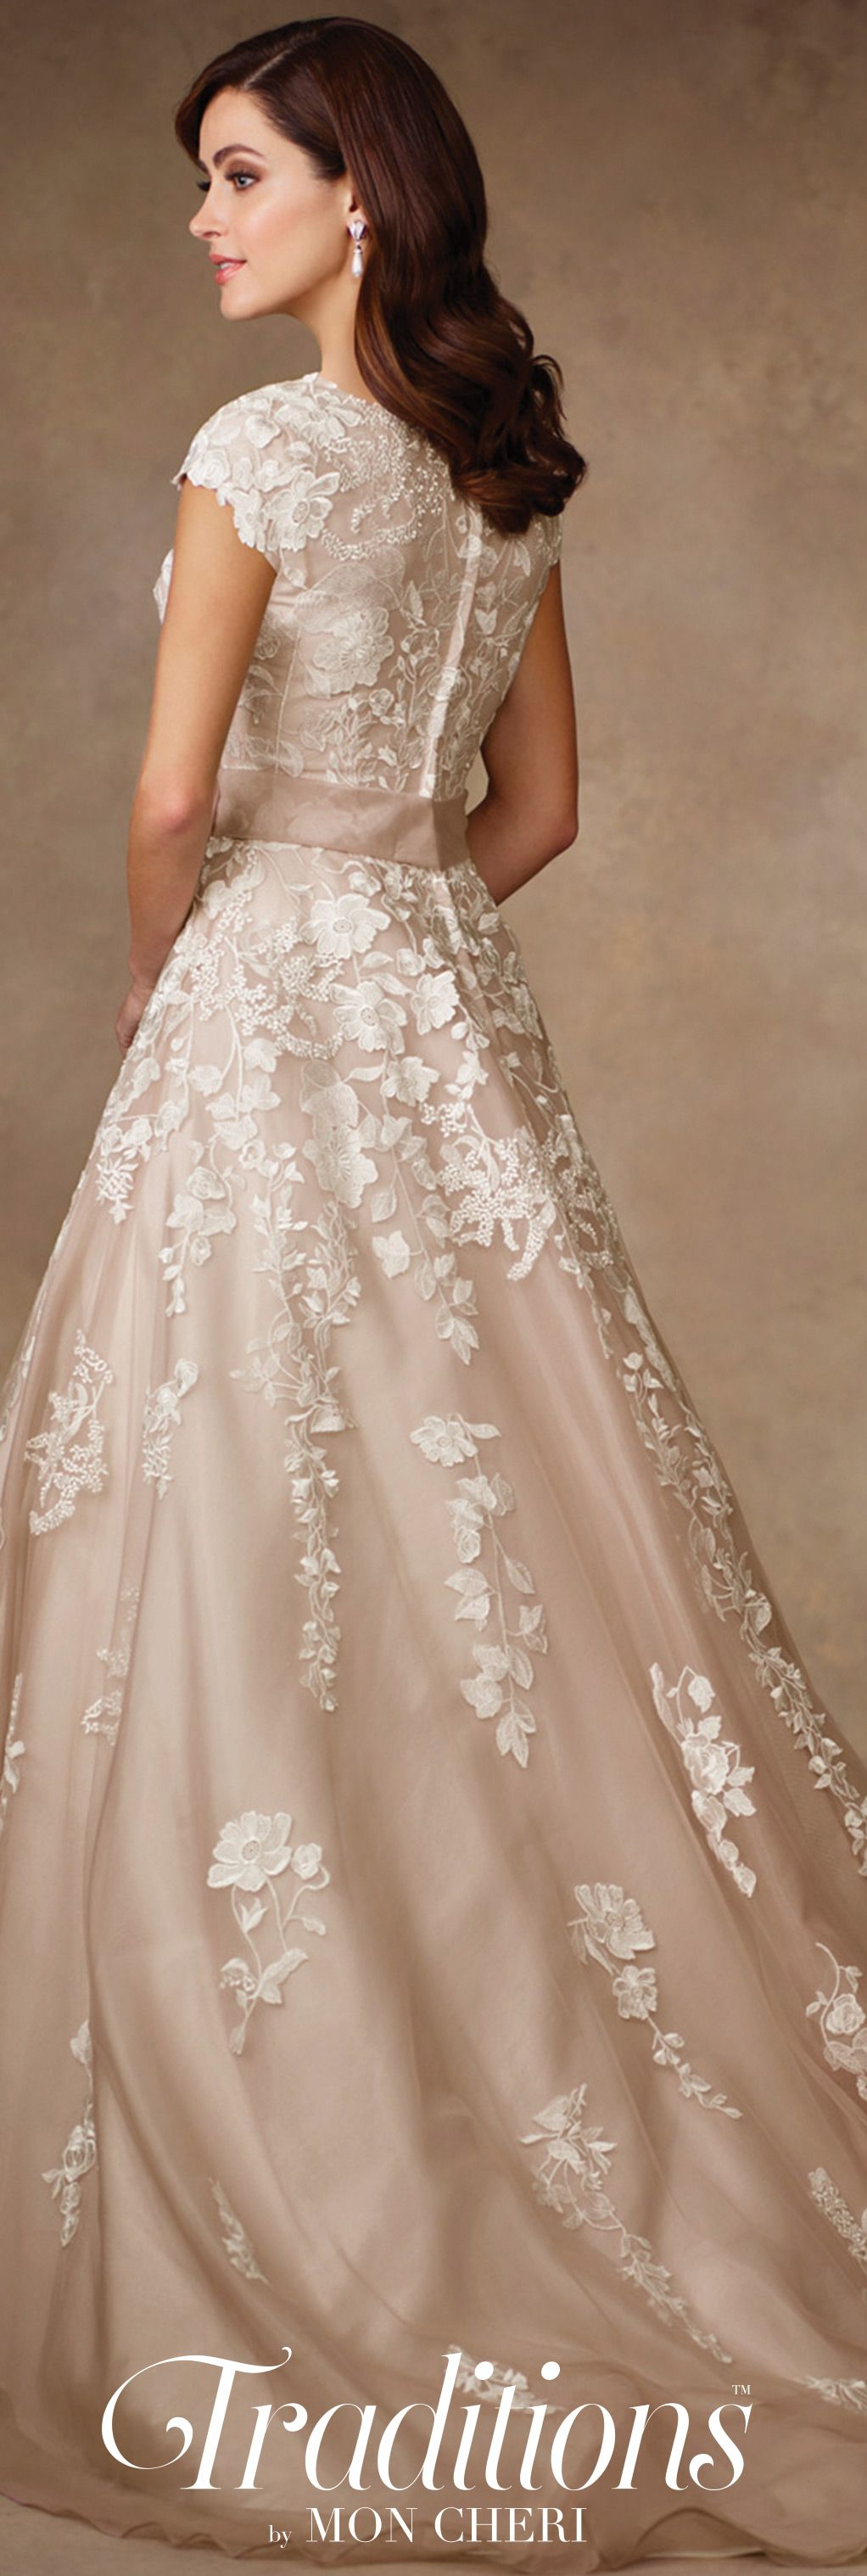 Conservative Lace A-Line Wedding Dress with Cap Sleeves- TR11707 ...